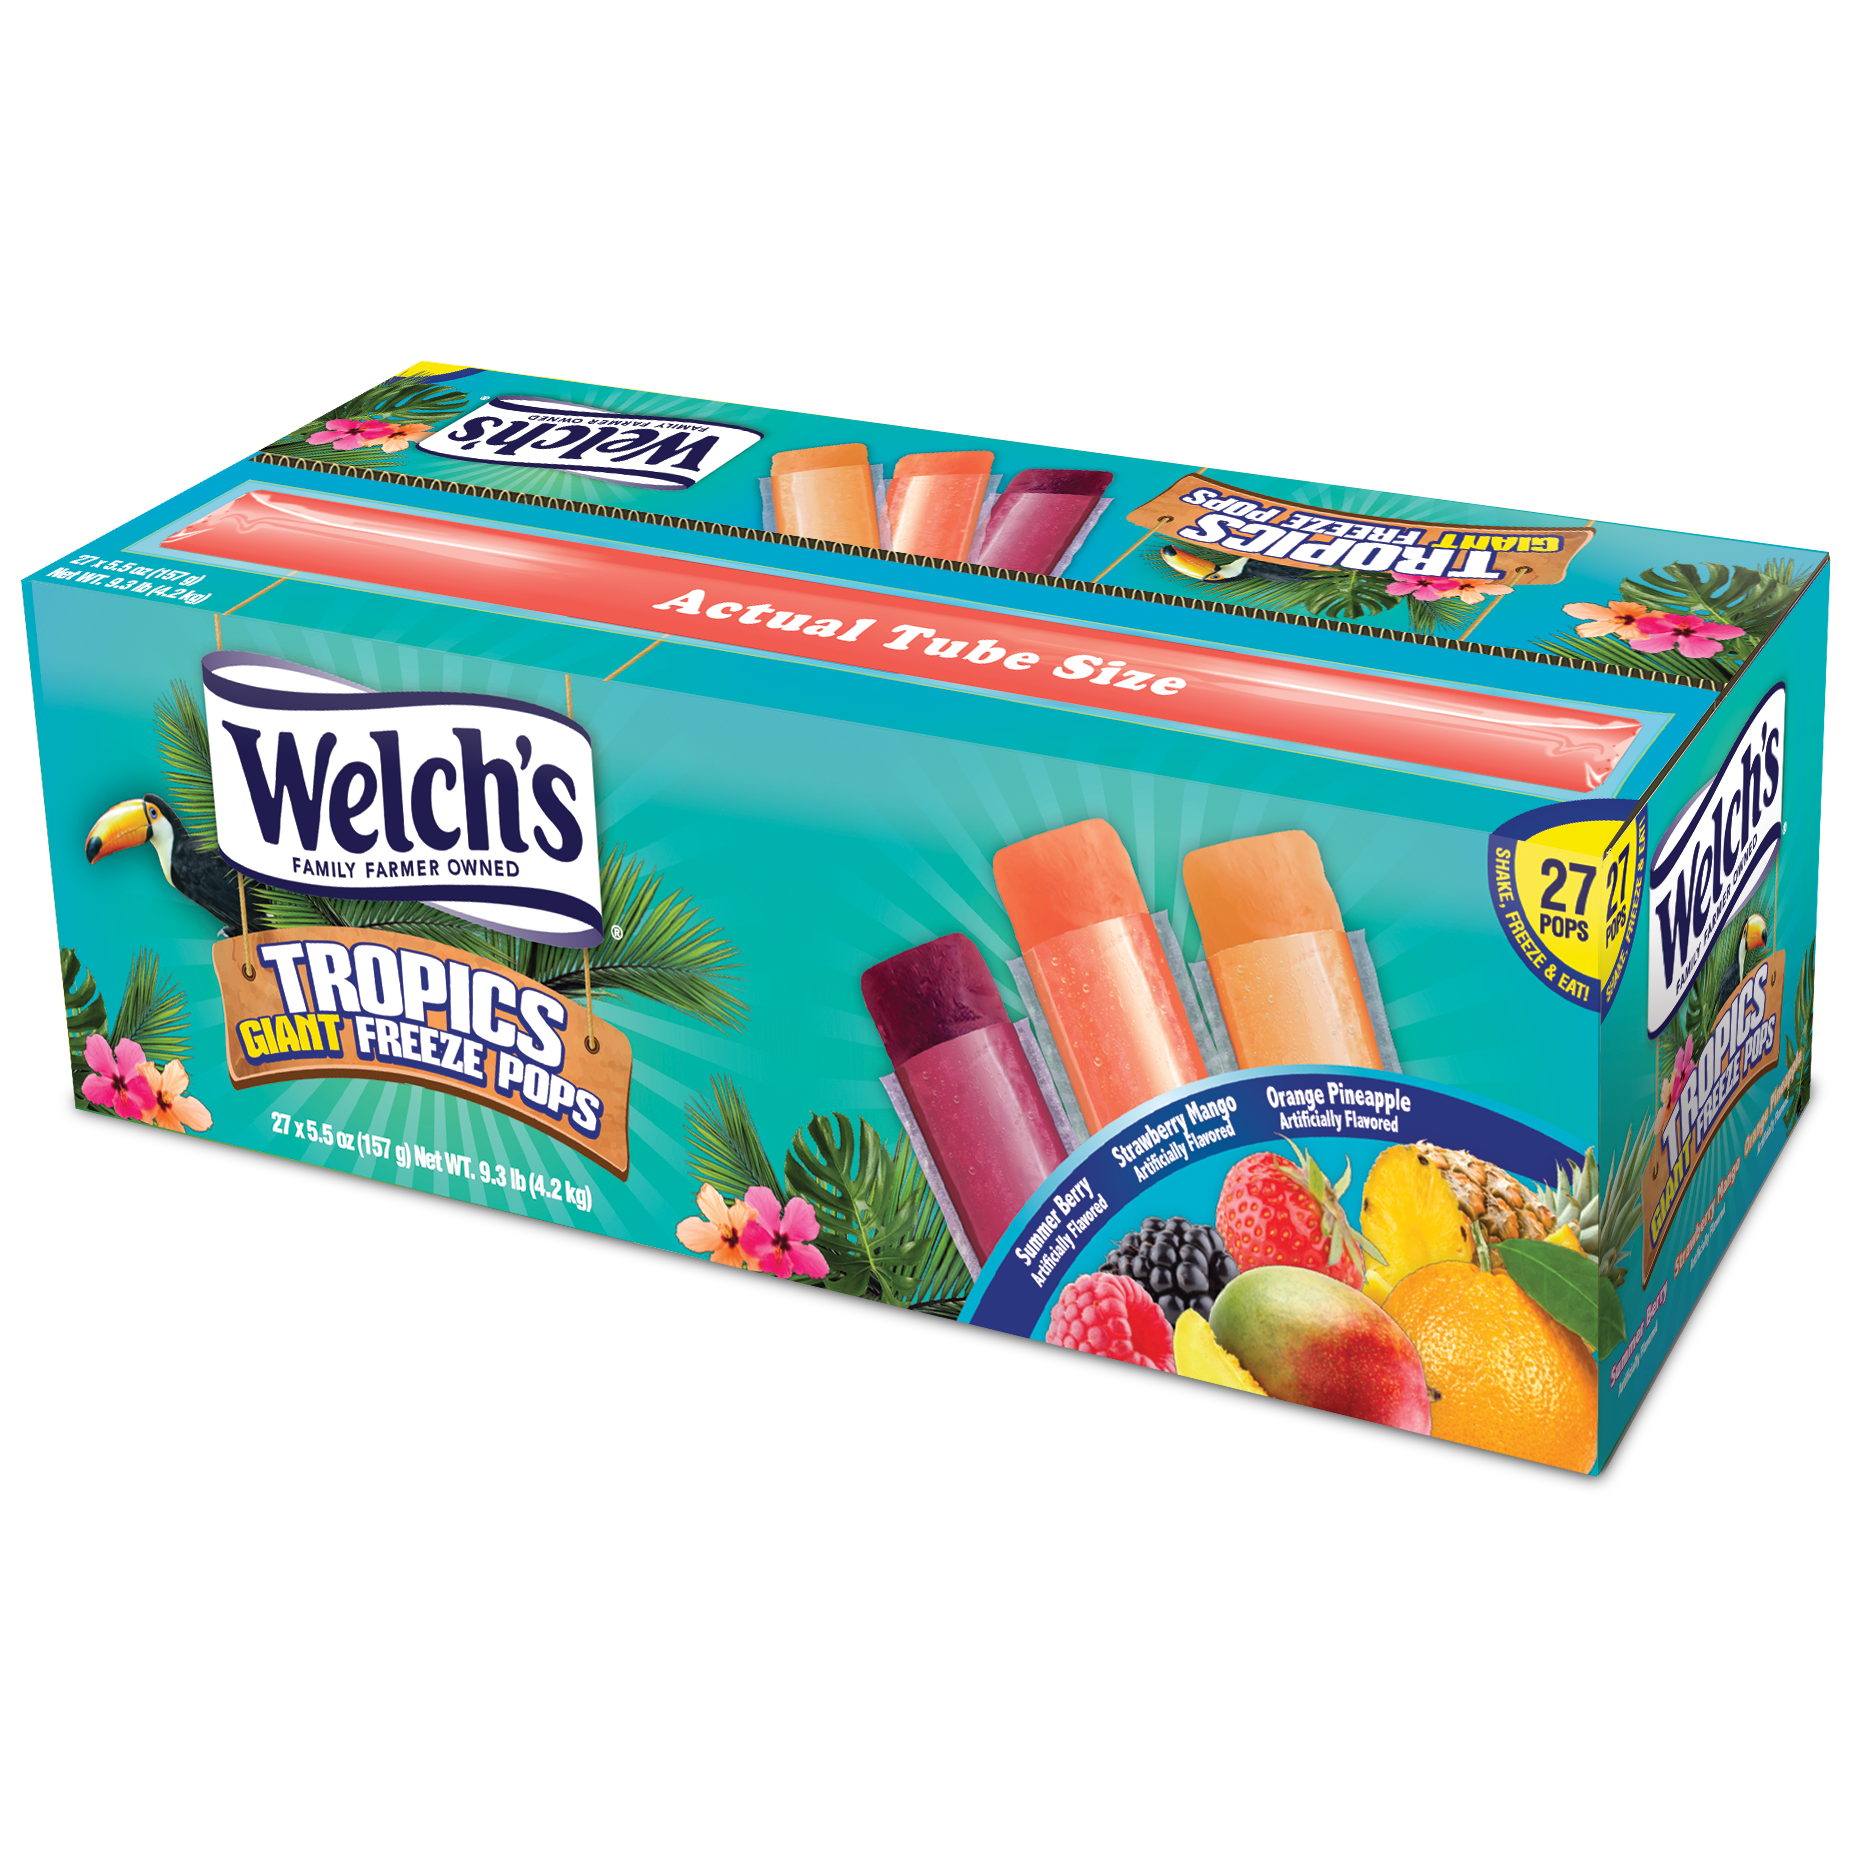 Welch's Tropics Freeze Pops